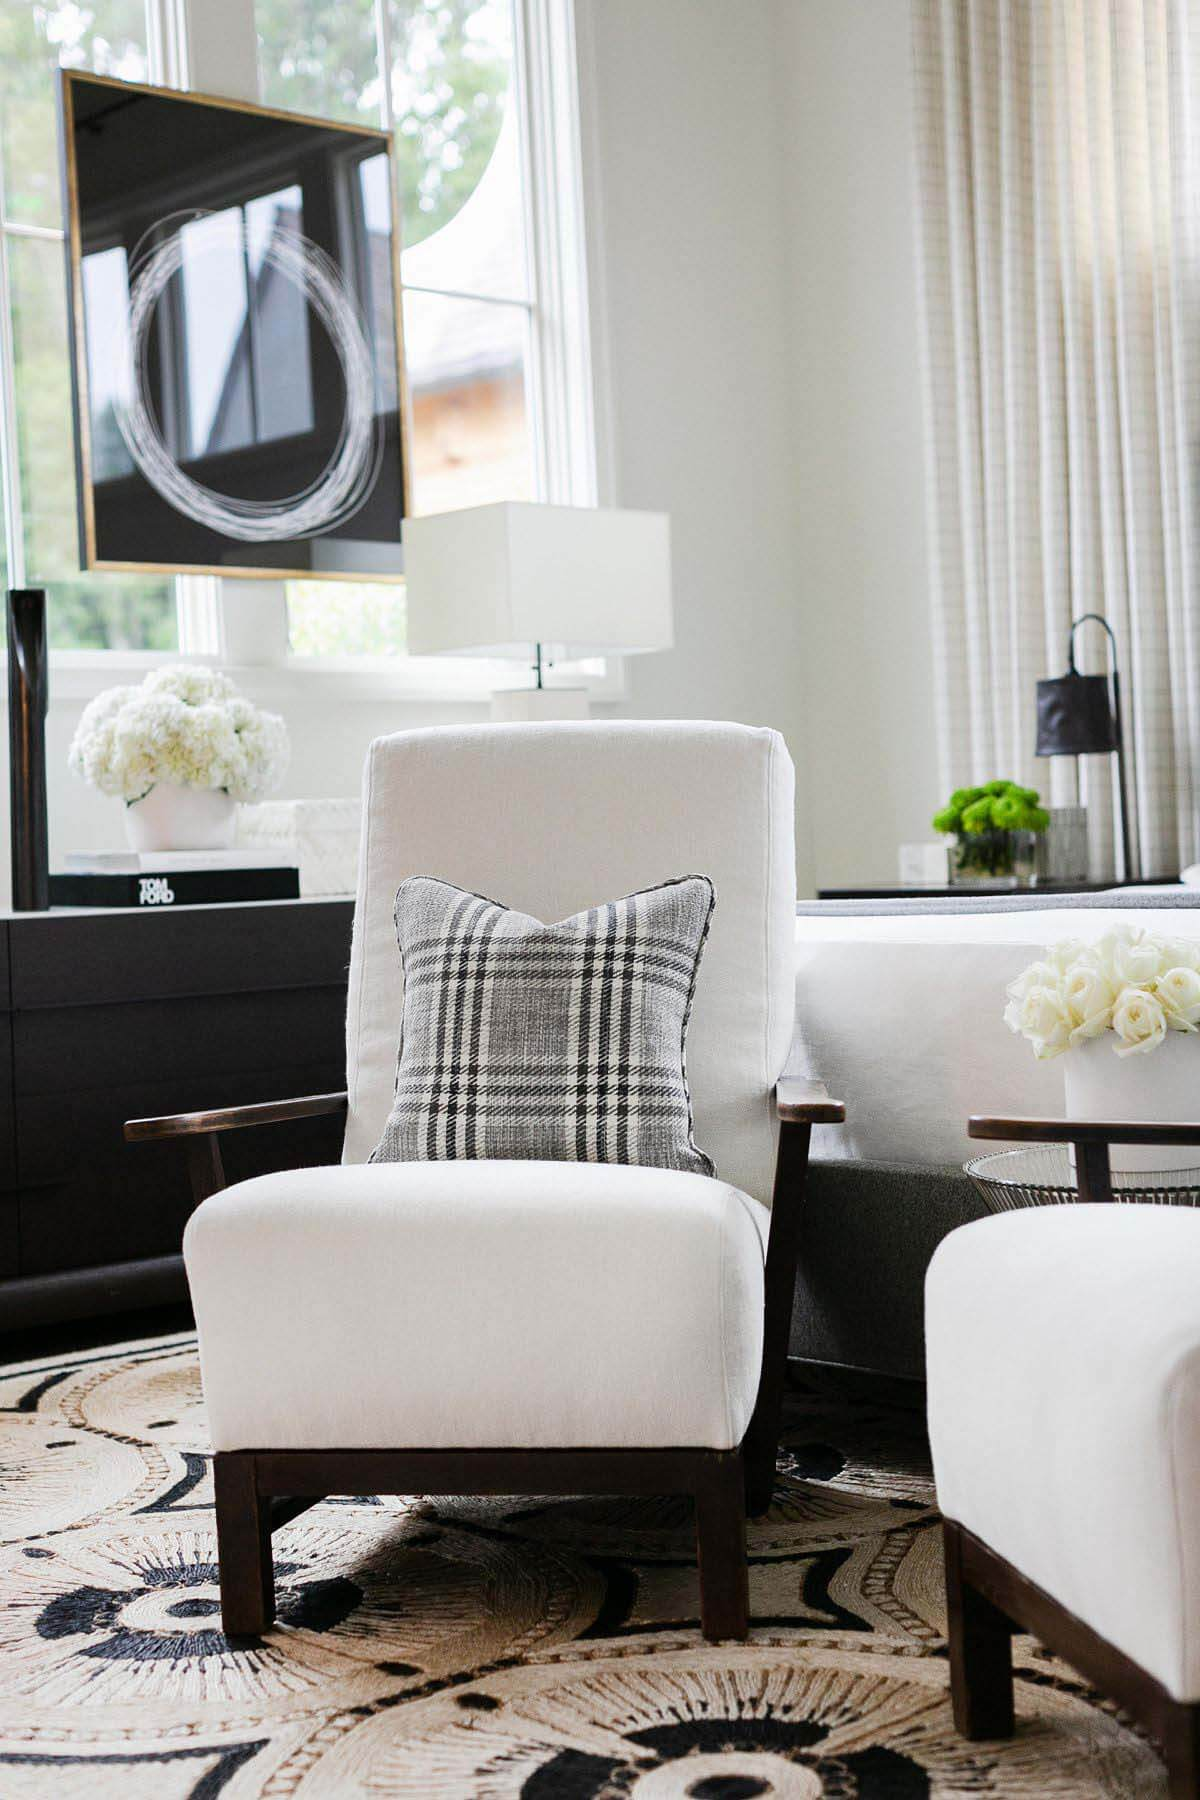 Matte black living room hardware picked out by Lorraine Enwright of Intuitive Dwellings